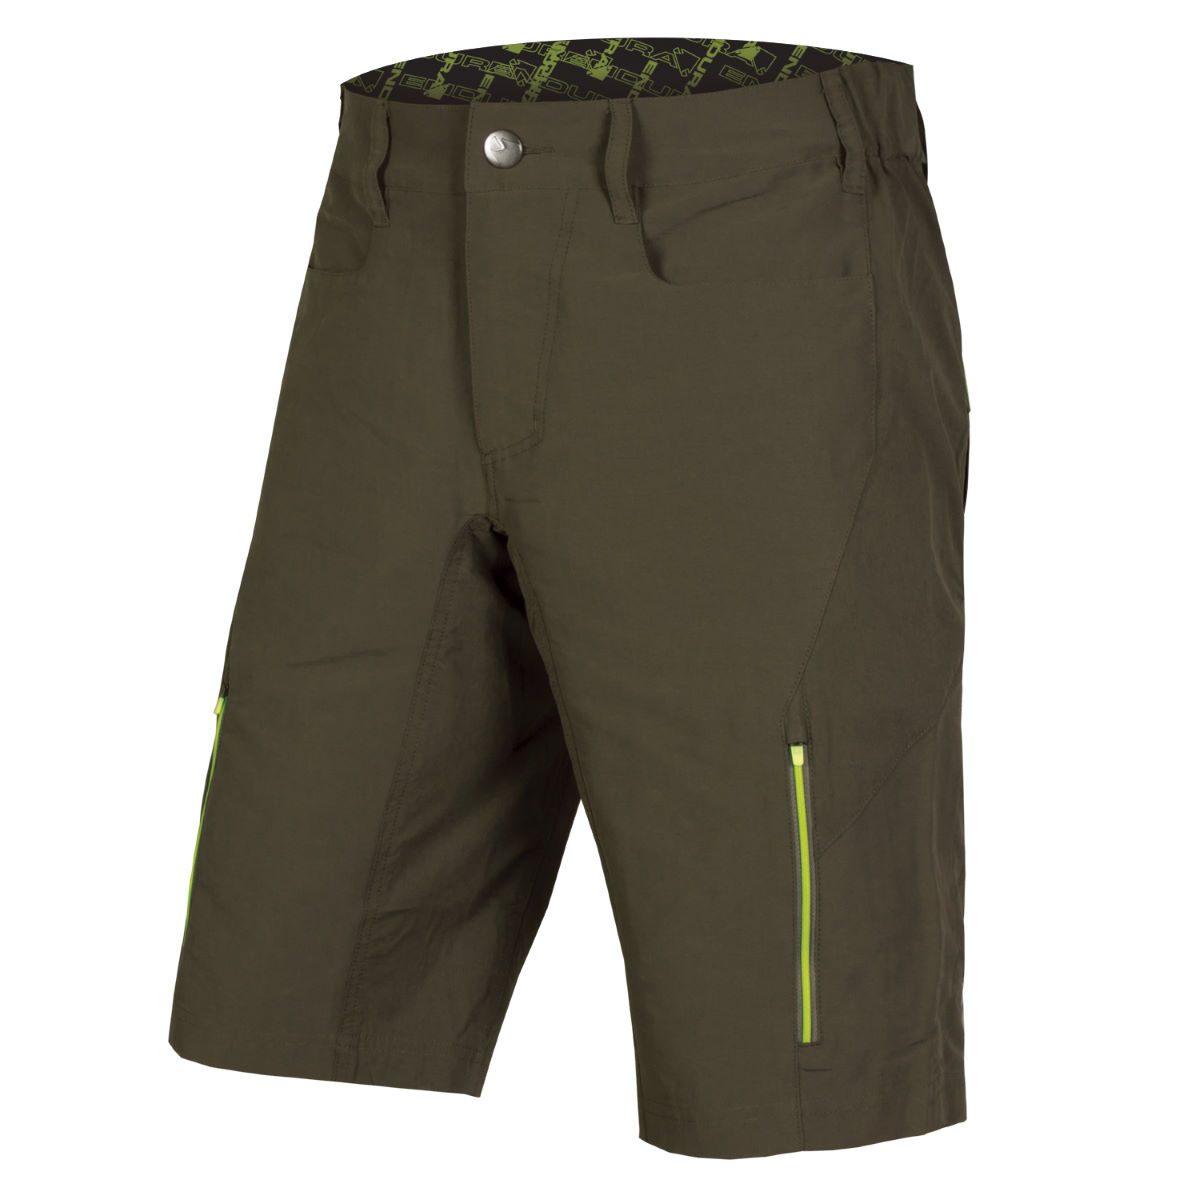 Short Endura SingleTrack III - XXLarge Kaki Shorts VTT